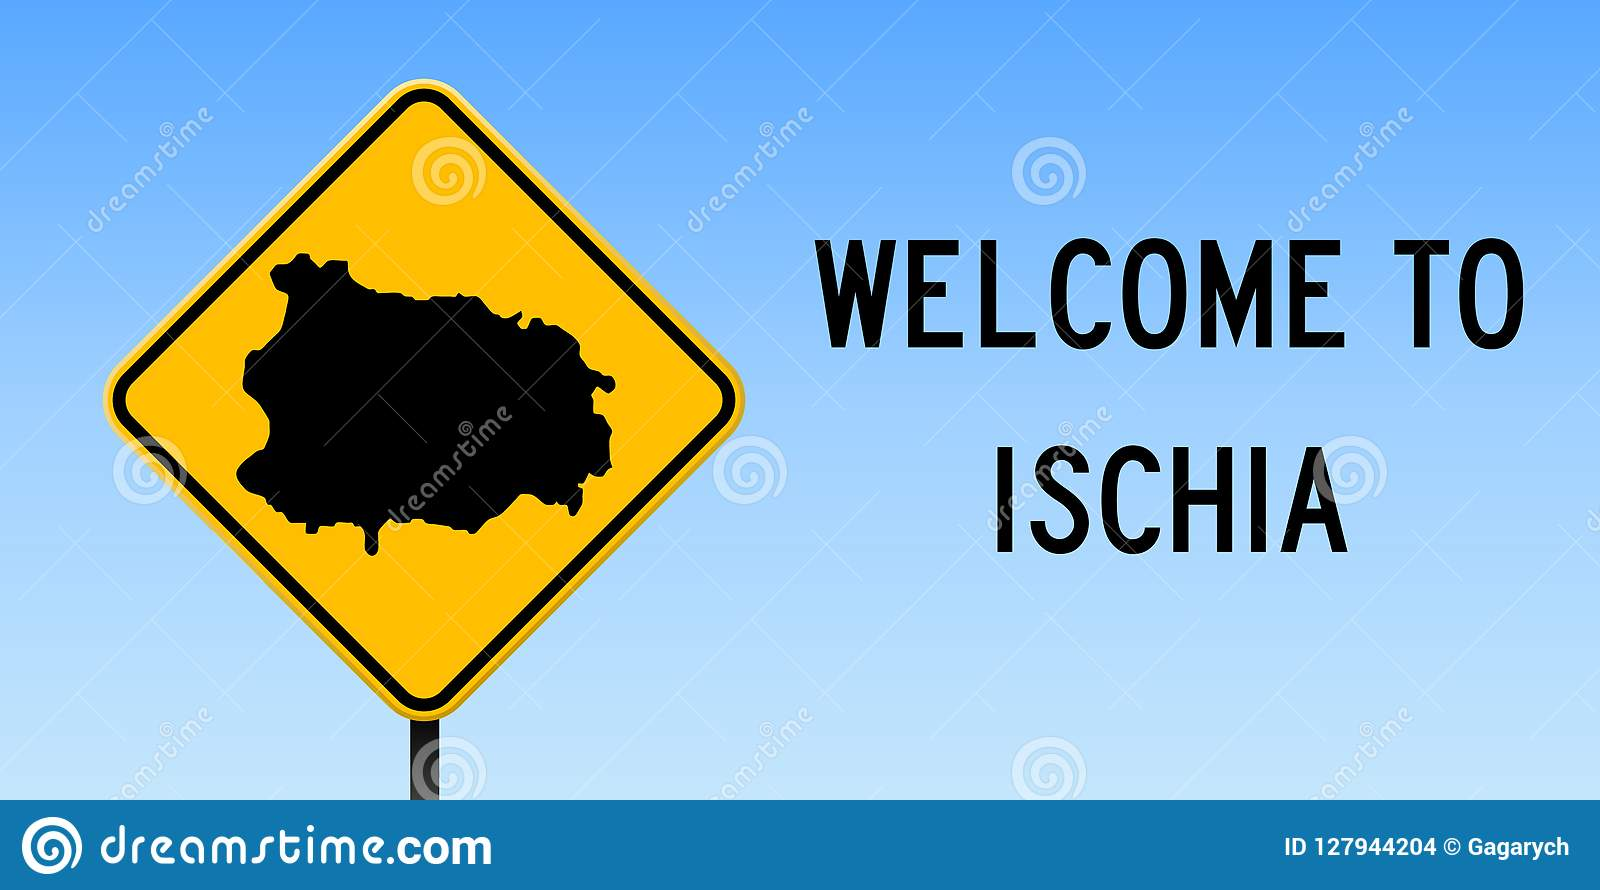 Ischia Map On Road Sign Stock Vector Illustration Of Italy